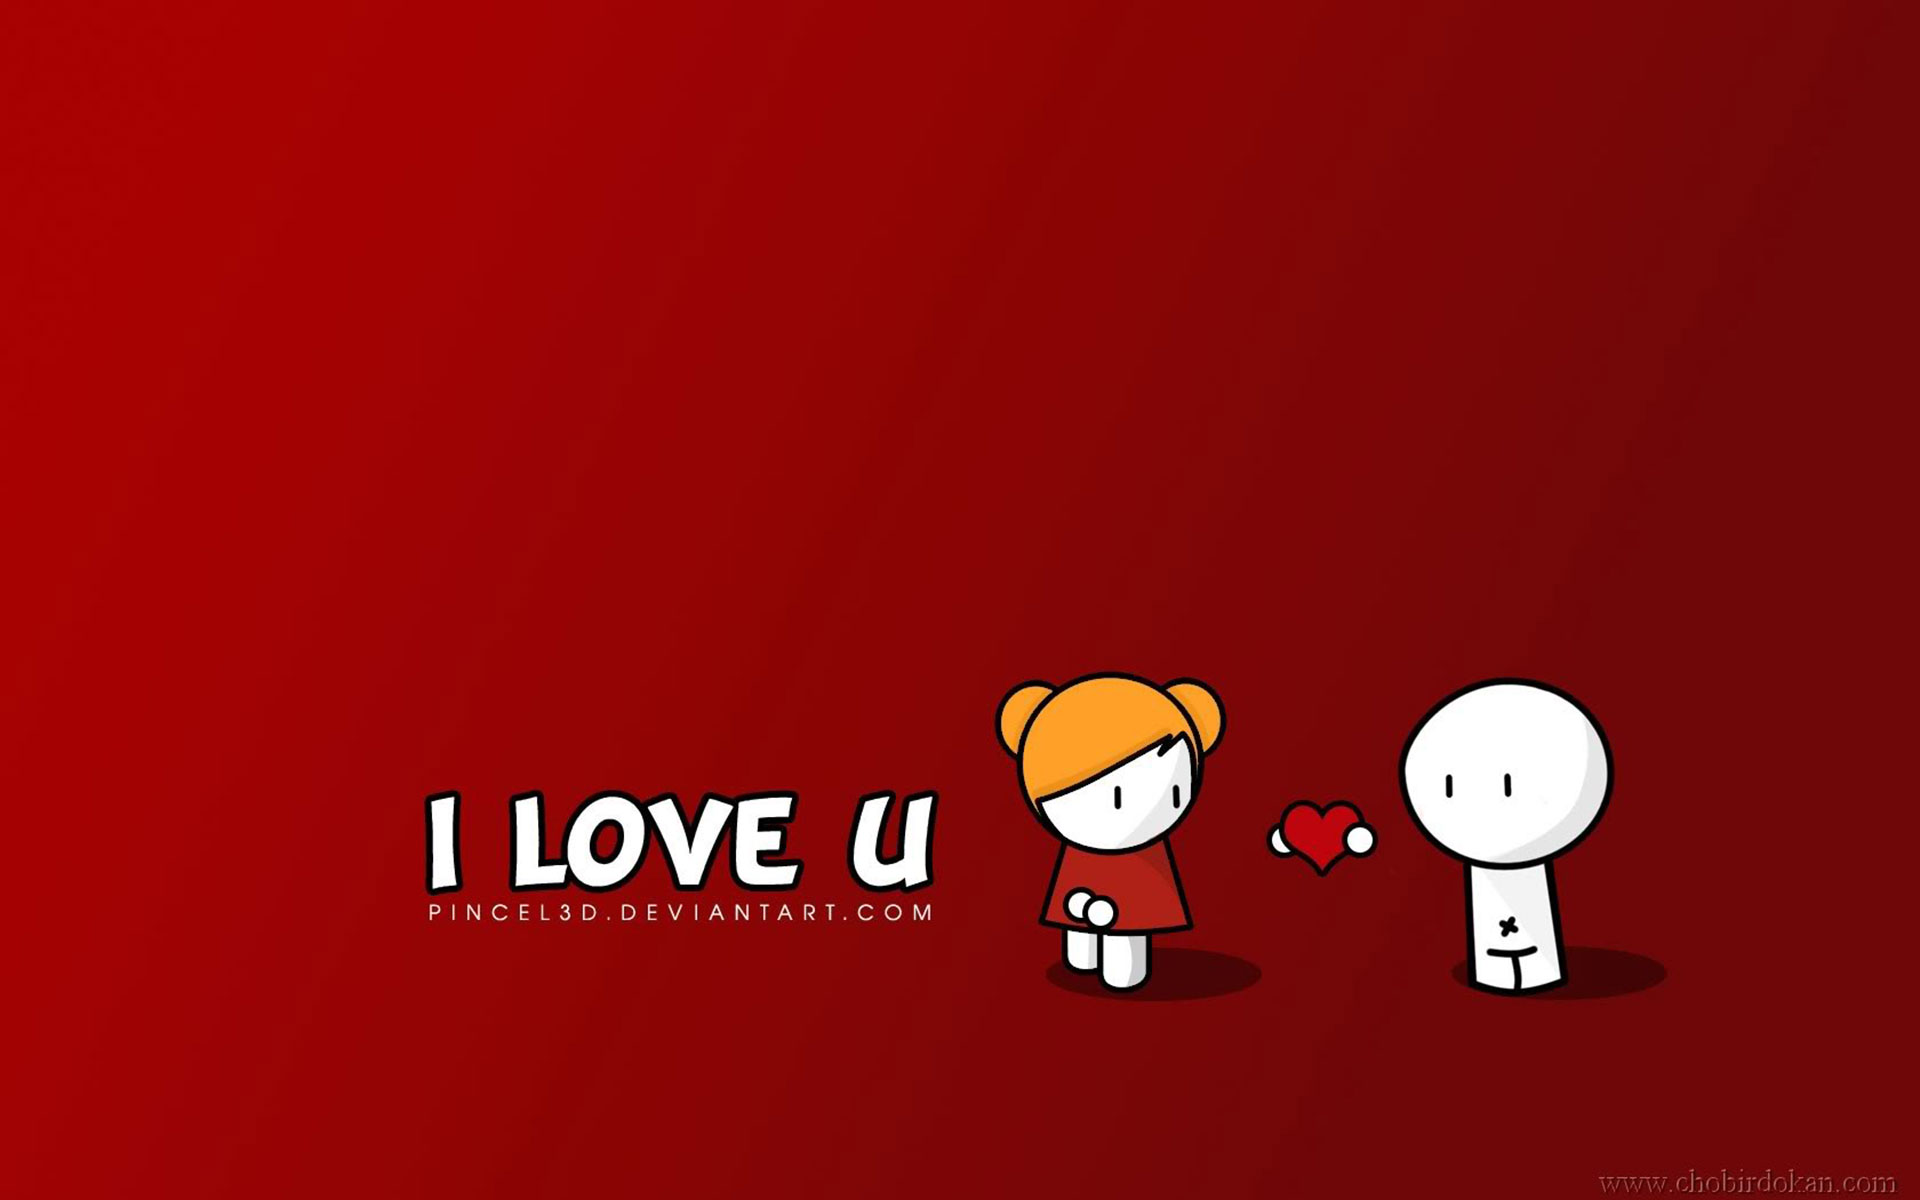 Love U Wallpaper With Quotes : 25+ Free HD I Love You Wallpapers cute I Love You Images